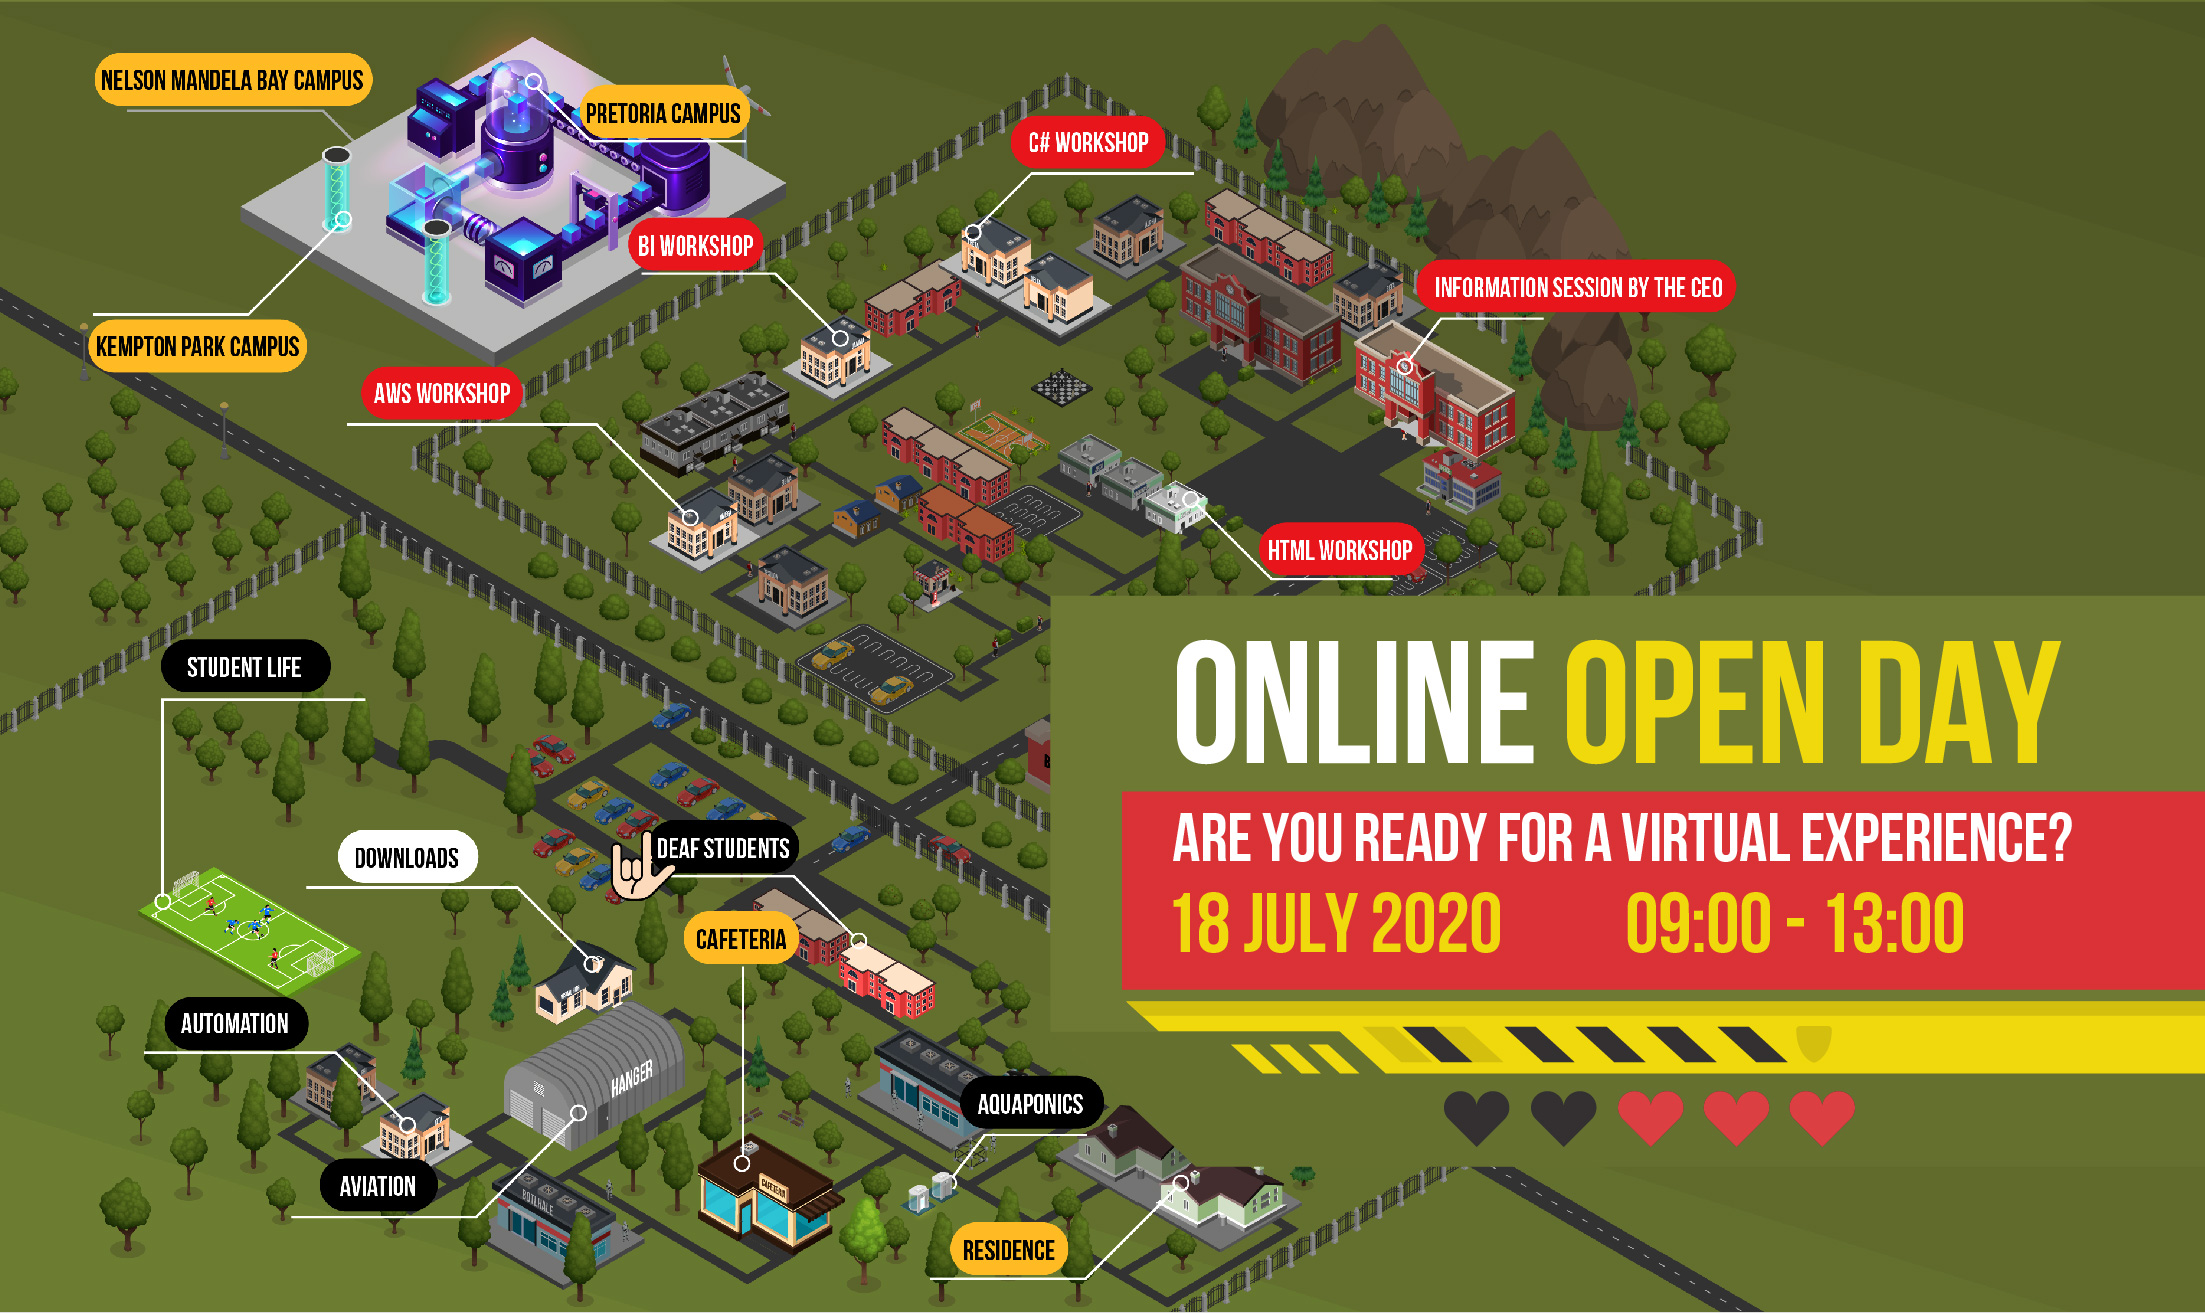 Online Open Day